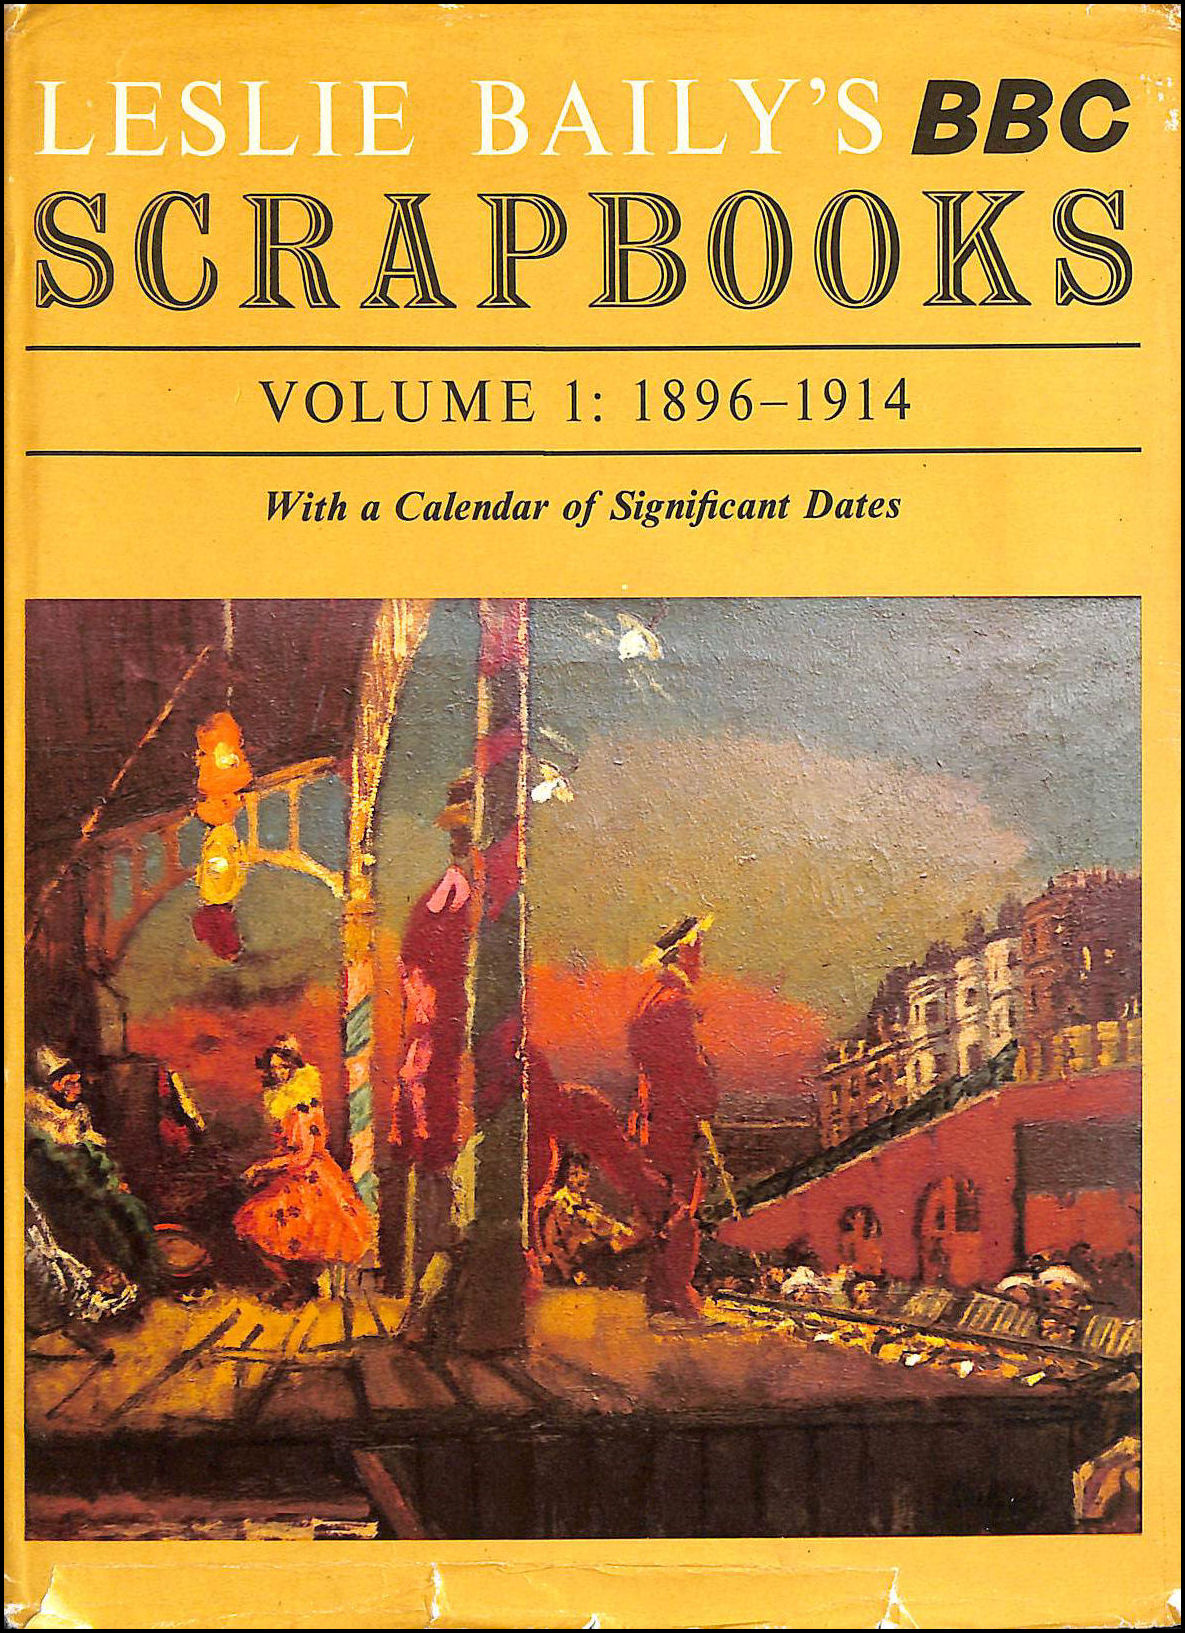 Leslie Baily's BBC Scrapbooks Vol. 1. 1896-1914 With A Calendar Of Significant Dates, Baily, Leslie